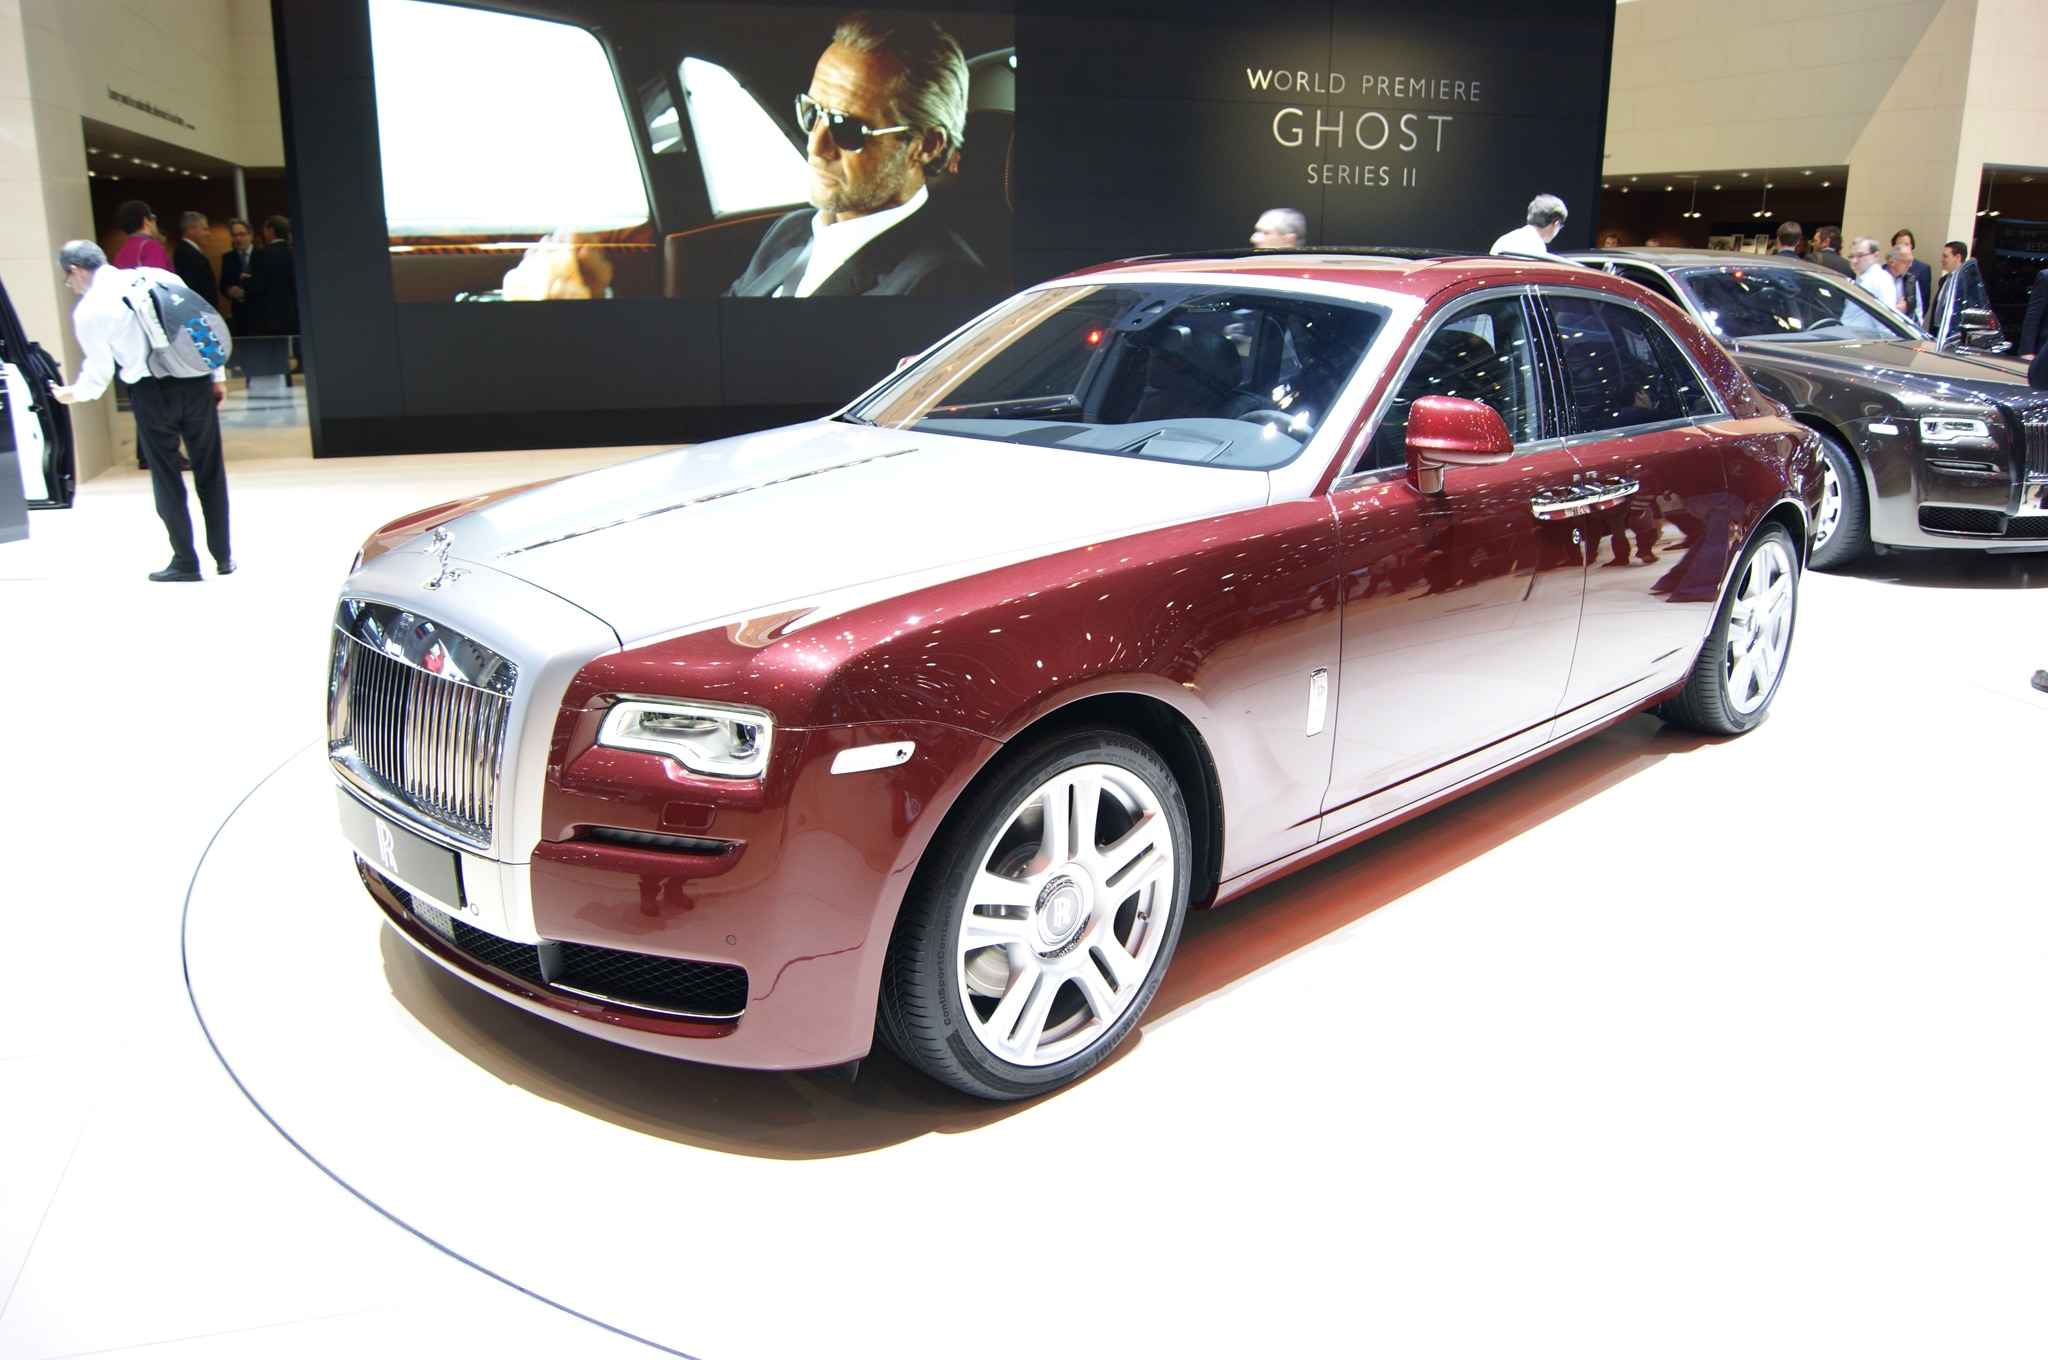 2015 Rolls Royce Ghost Series II Promo1